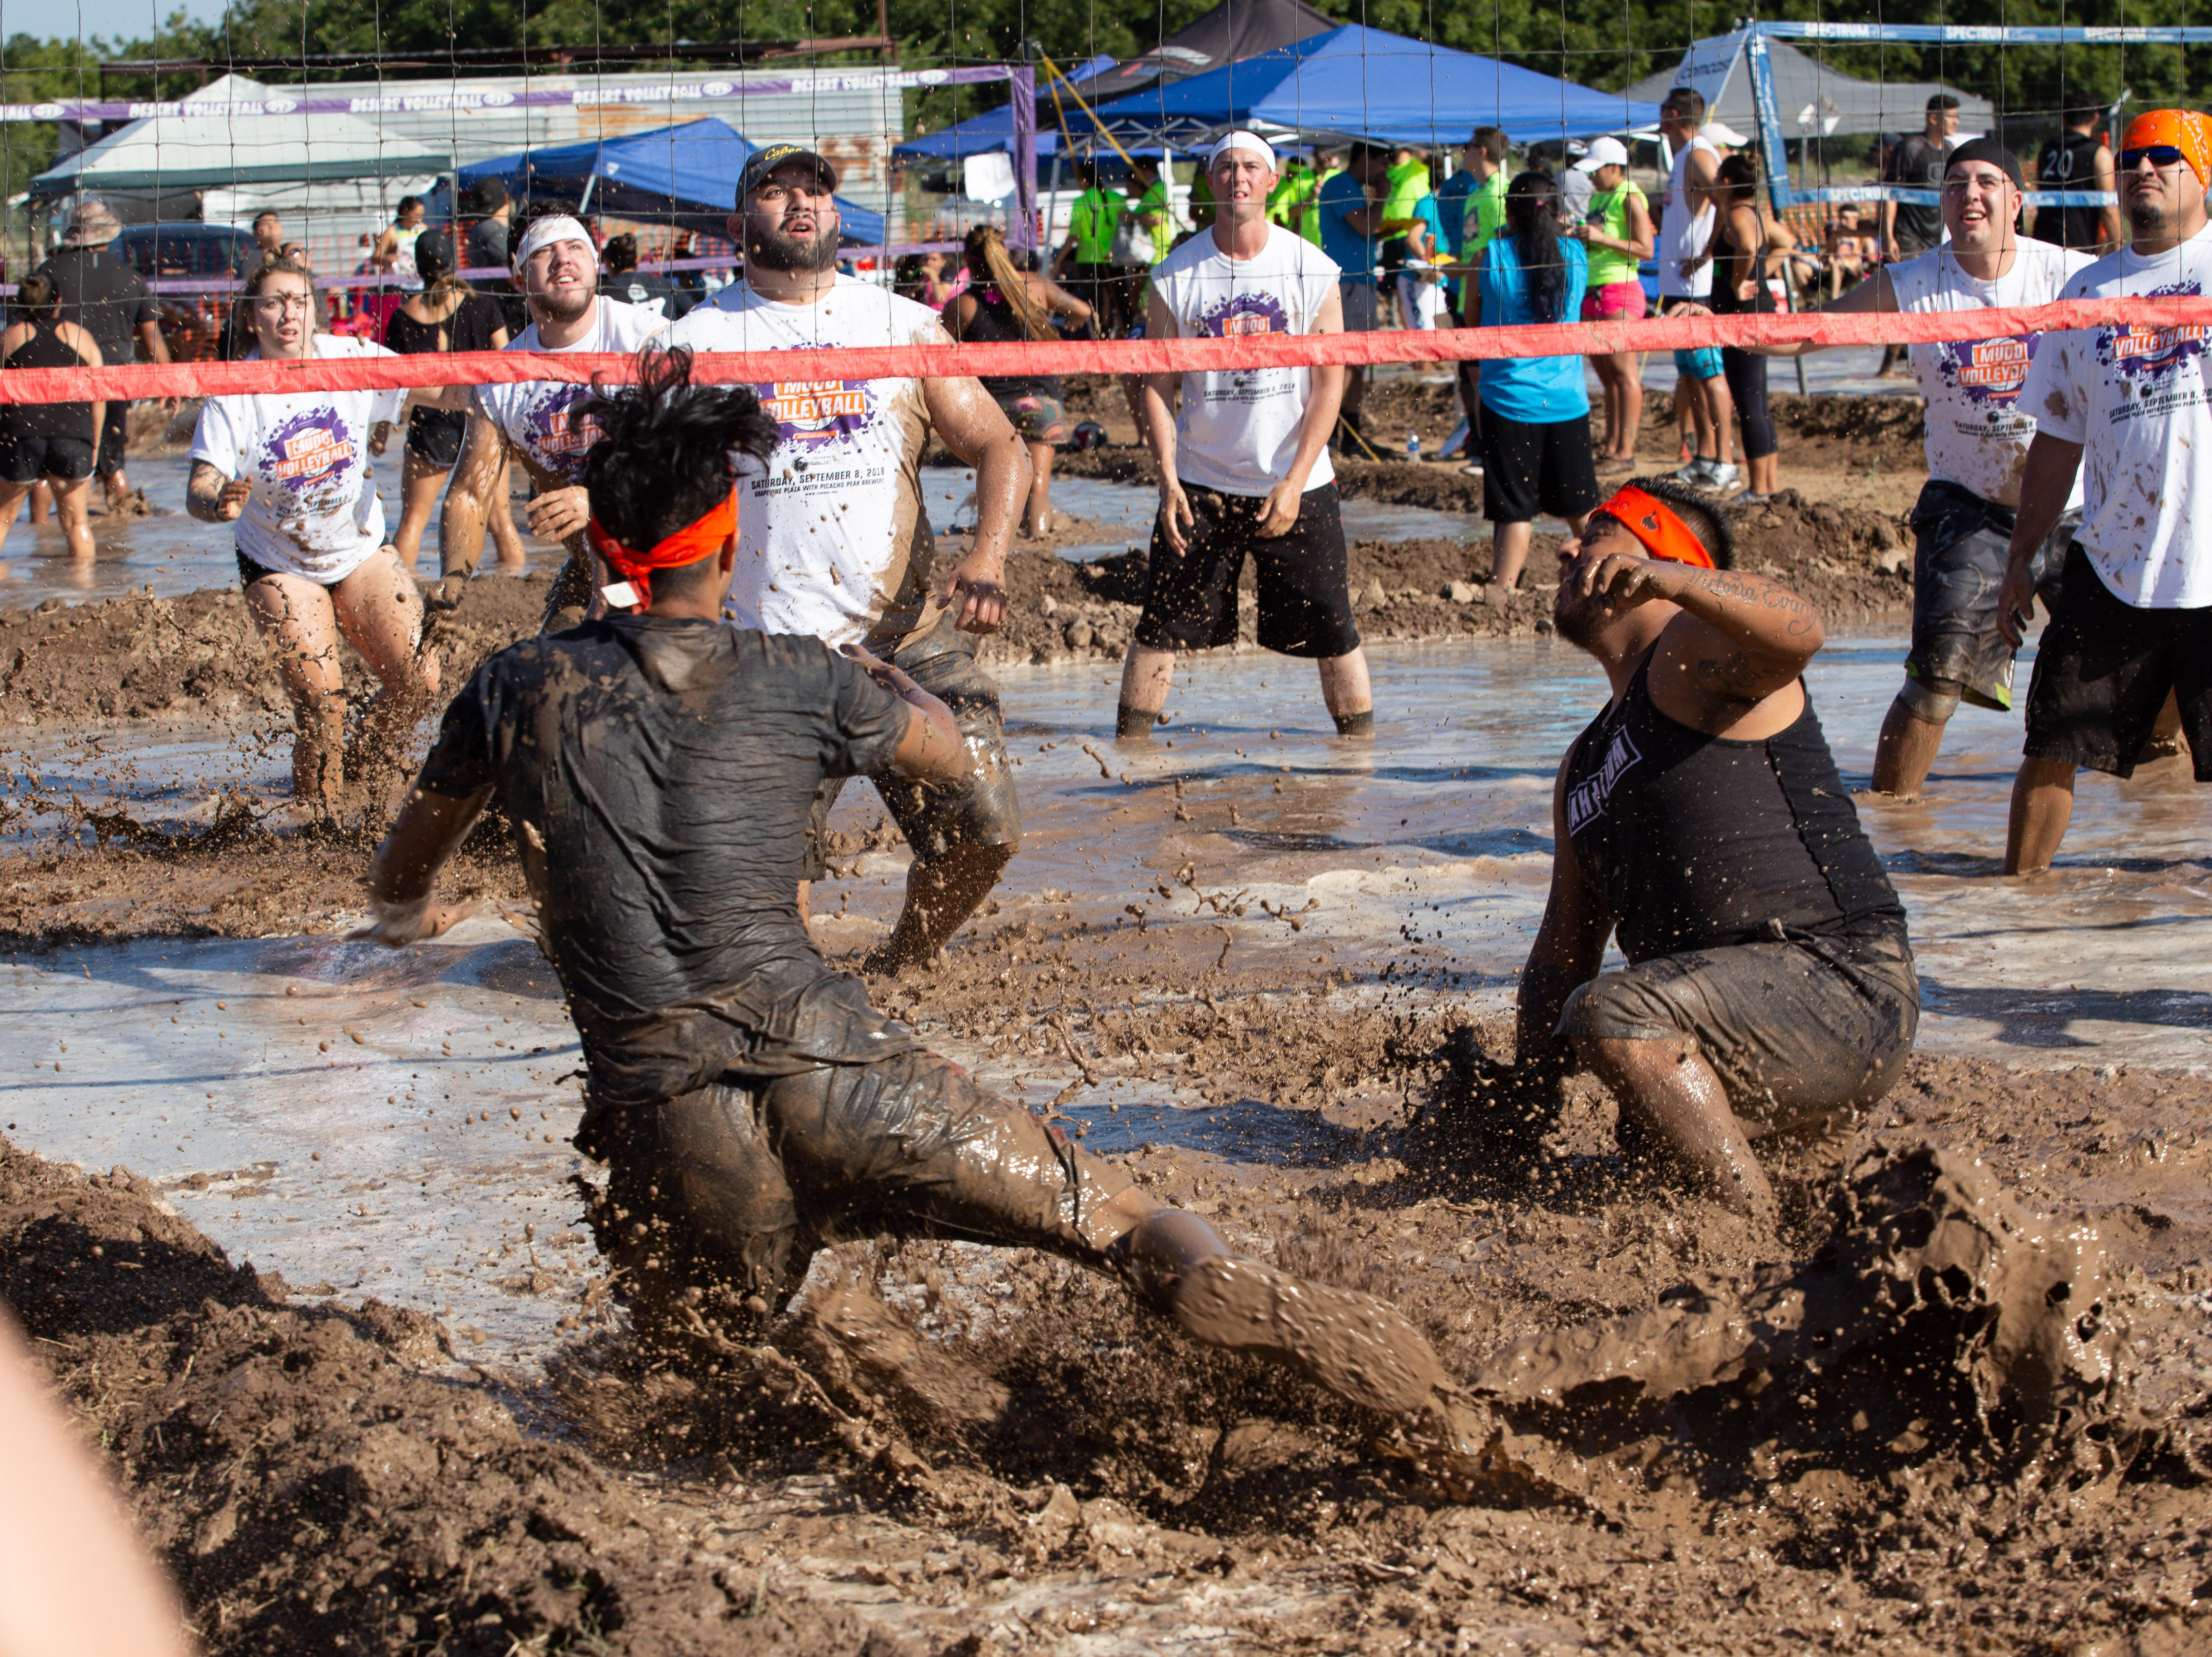 Mud was flying during the 9th Annual Mudd Volleyball tournament on September 8, 2018.